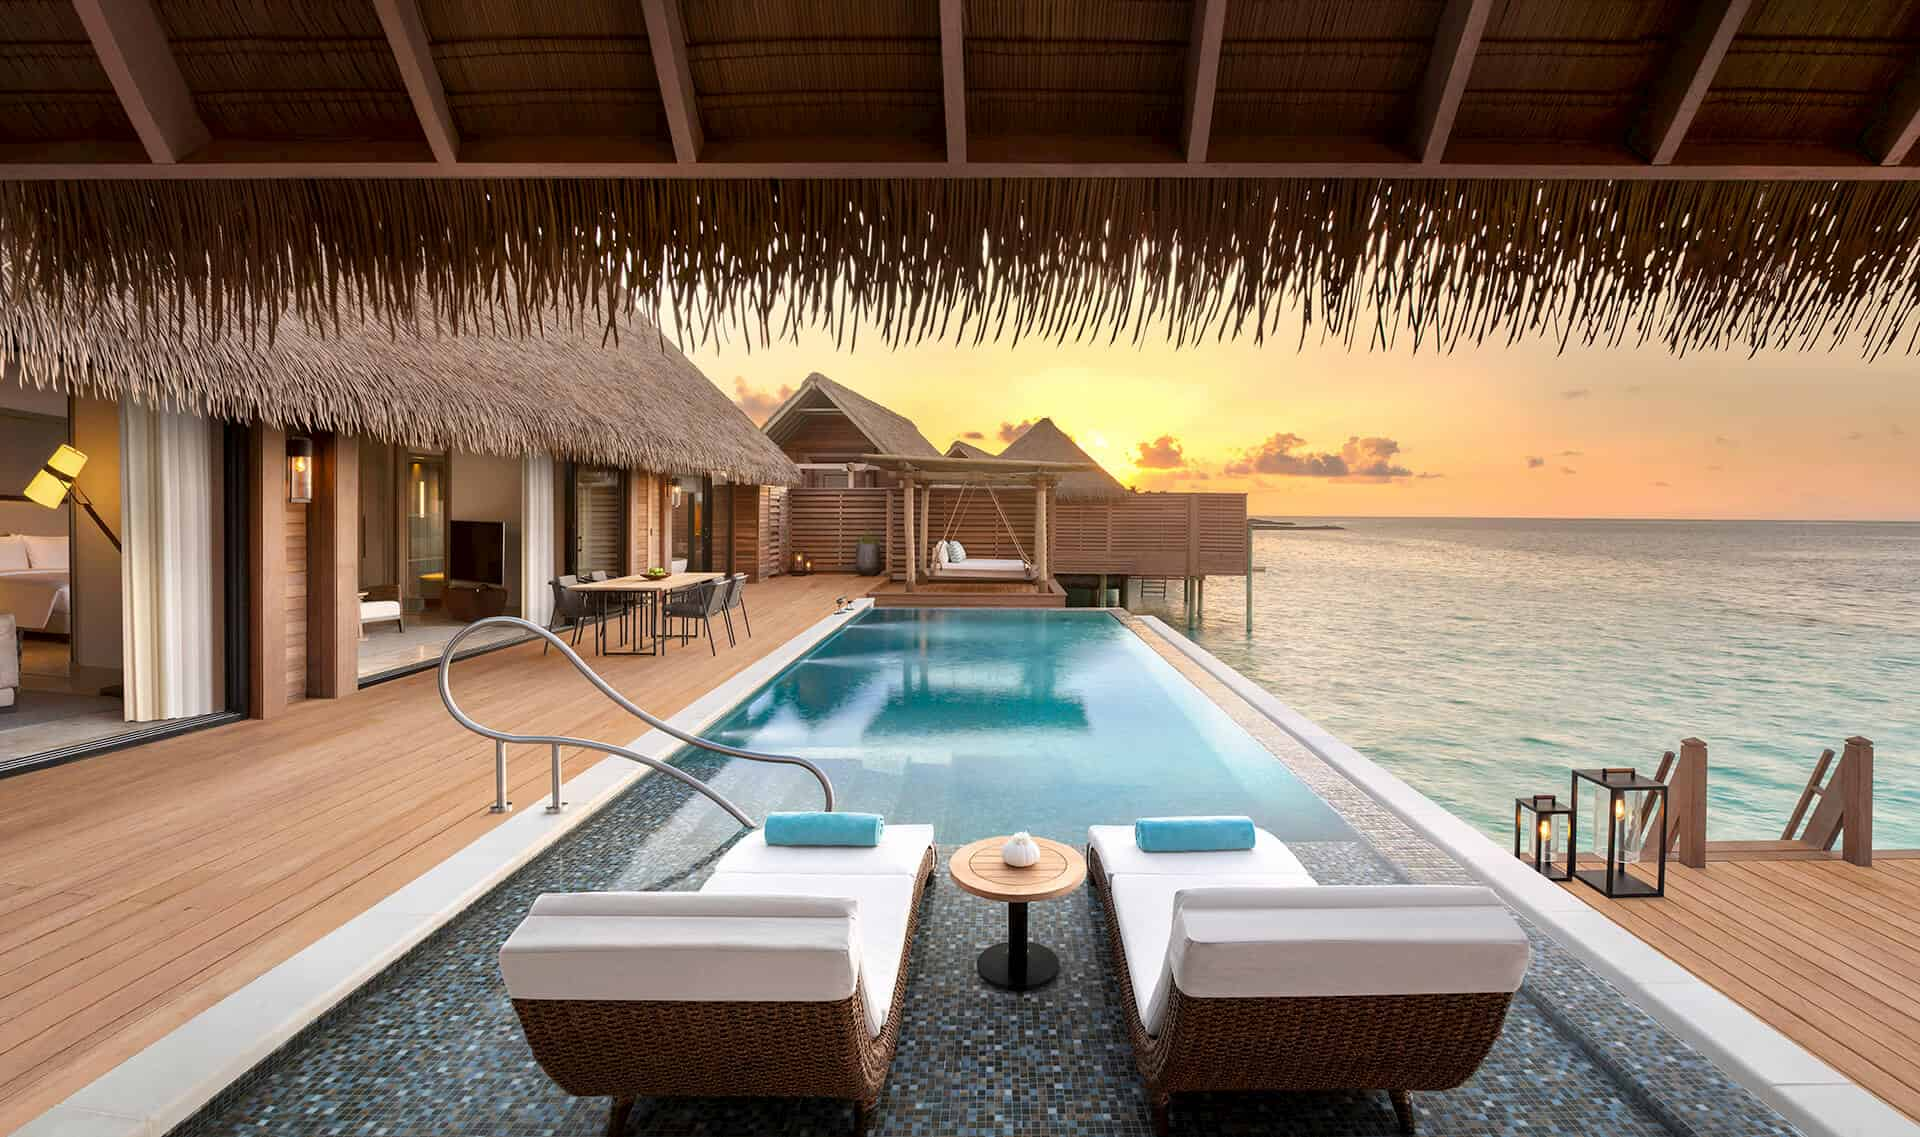 Resort Maldive Waldorf Astoria Maldives reef villa